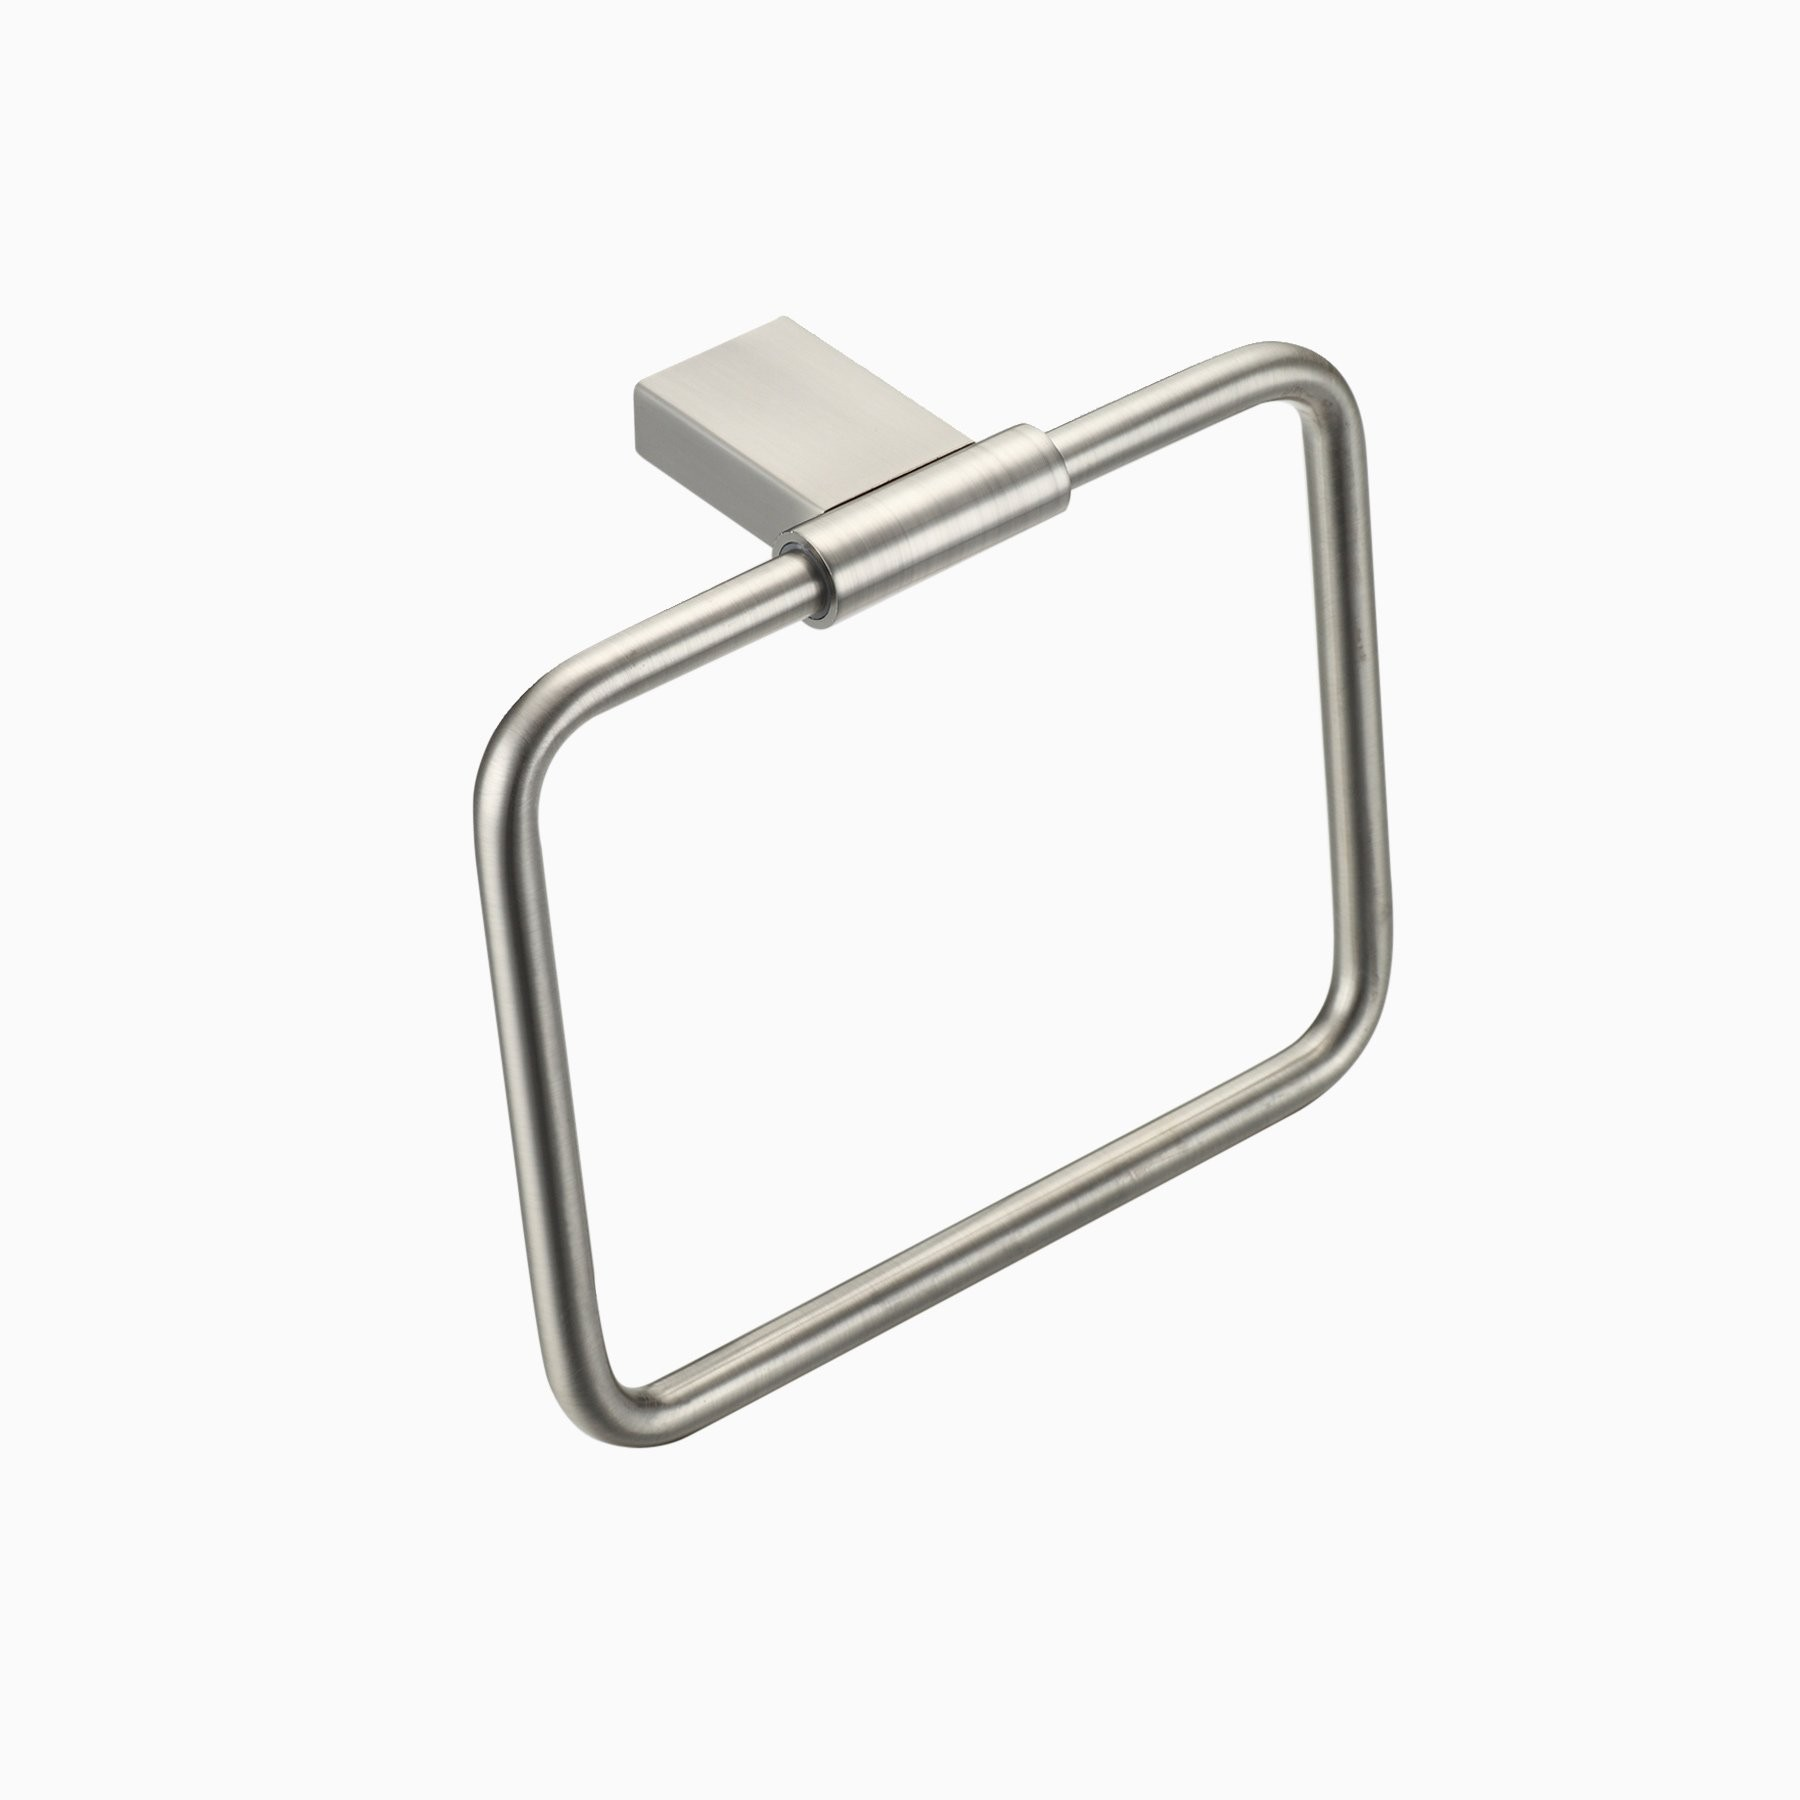 Countertop Towel Ring Benidorm Brass Wall Mounted Bathroom Towel Ring Modern